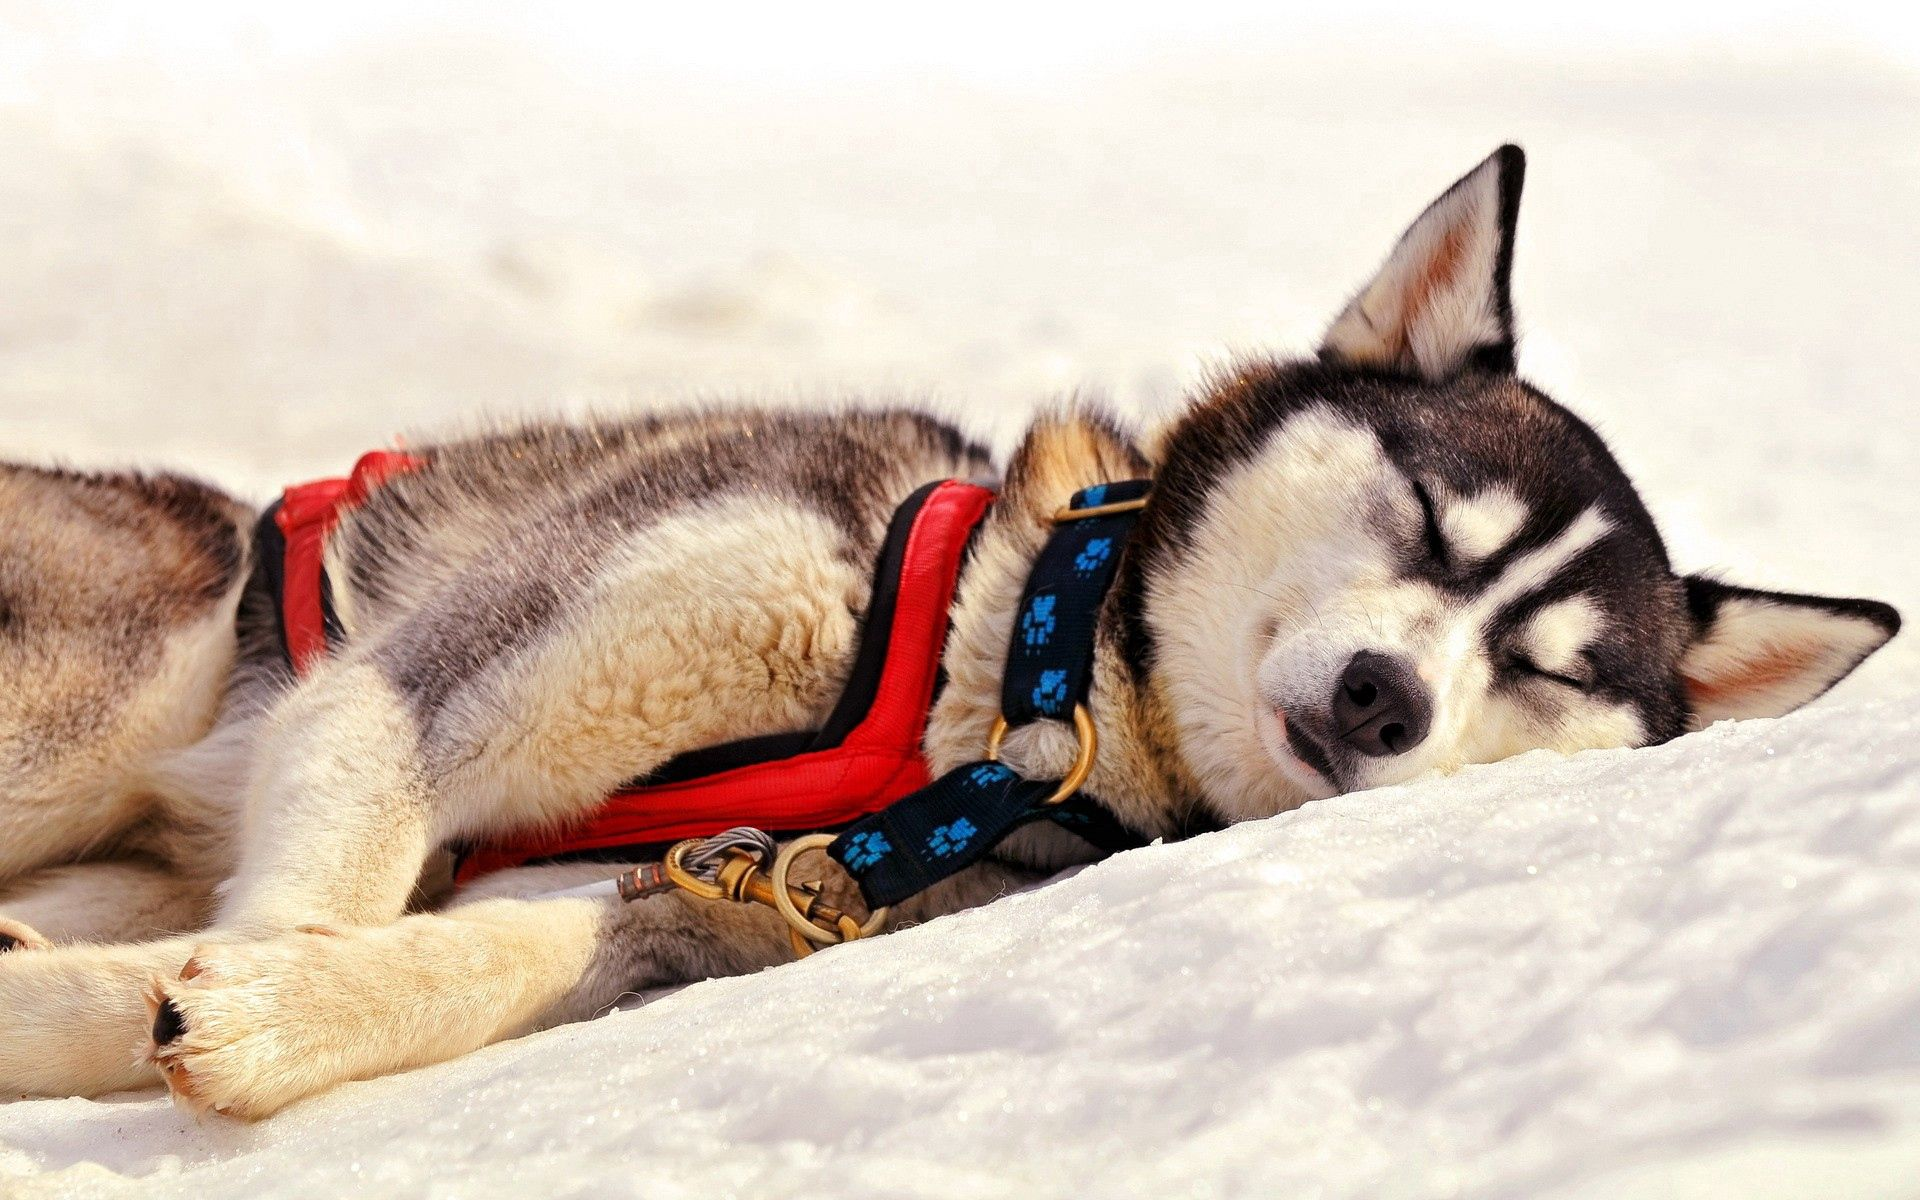 142288 download wallpaper Animals, Dog, Husky, Haska, Muzzle, Sleep, Dream, Grass, Team screensavers and pictures for free